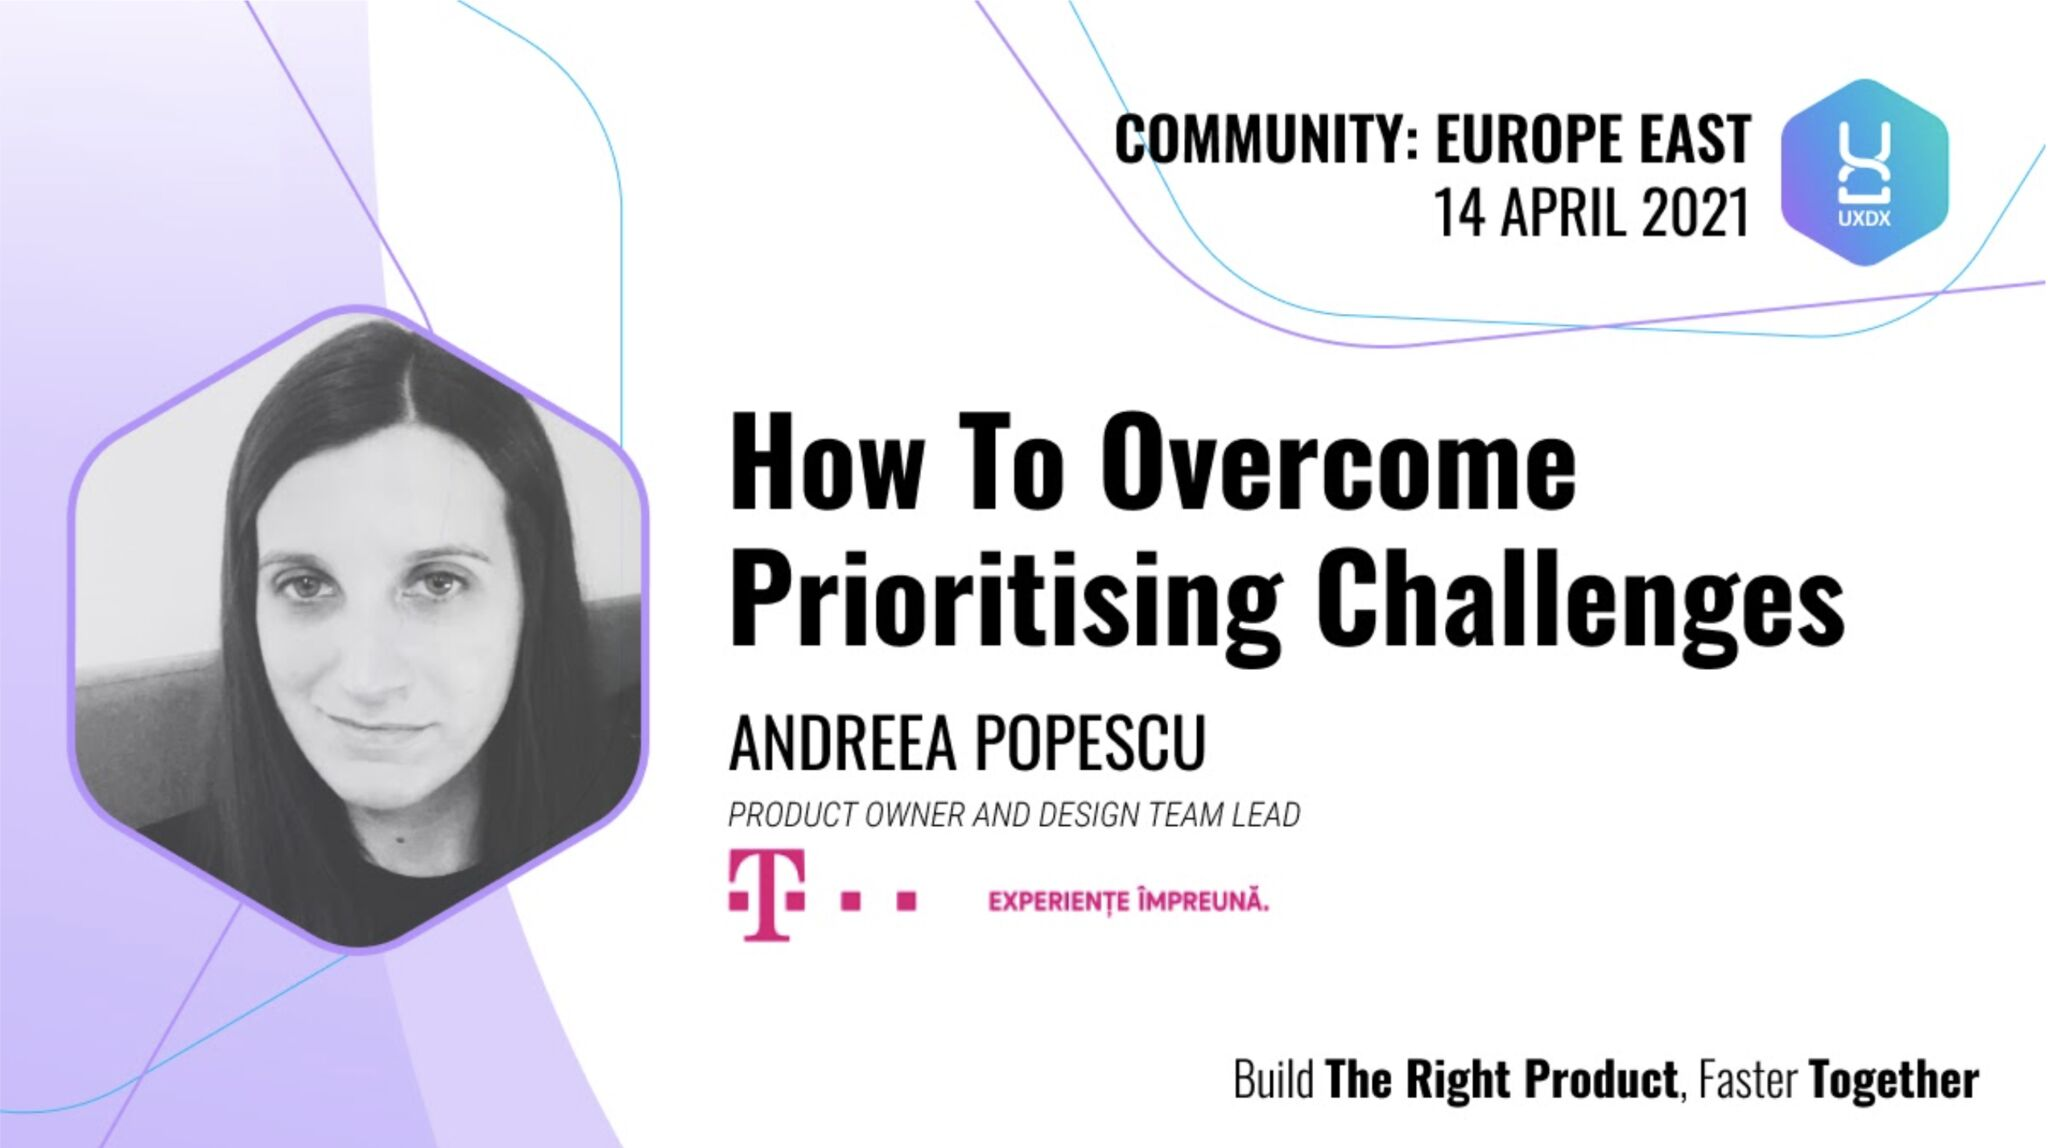 UXDX Community Europe East 2021 / How To Overcome Prioritising Challenges